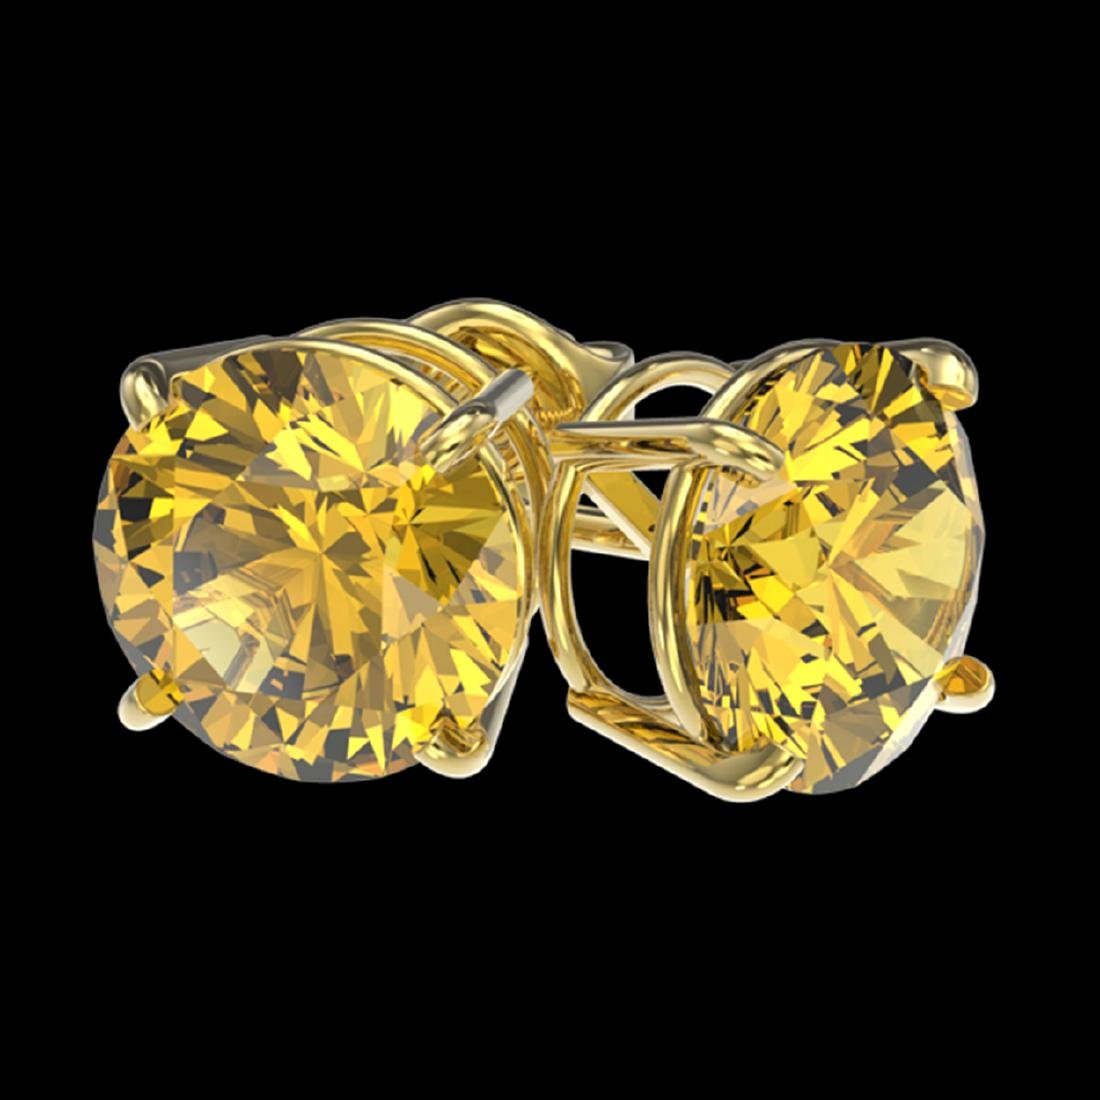 3 ctw Intense Yellow Diamond Stud Earrings 10K Yellow - 3